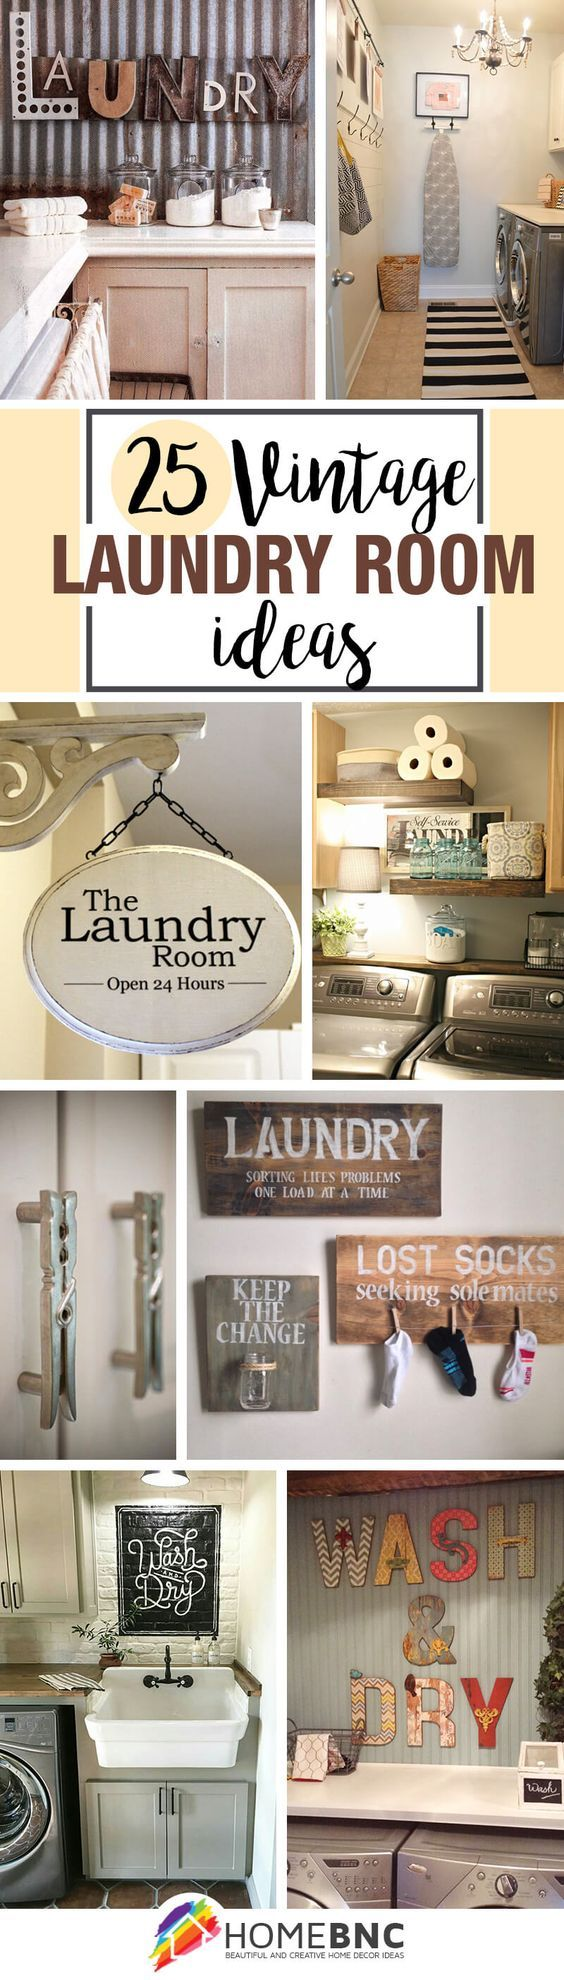 Vintage Laundry Room Decor Designs